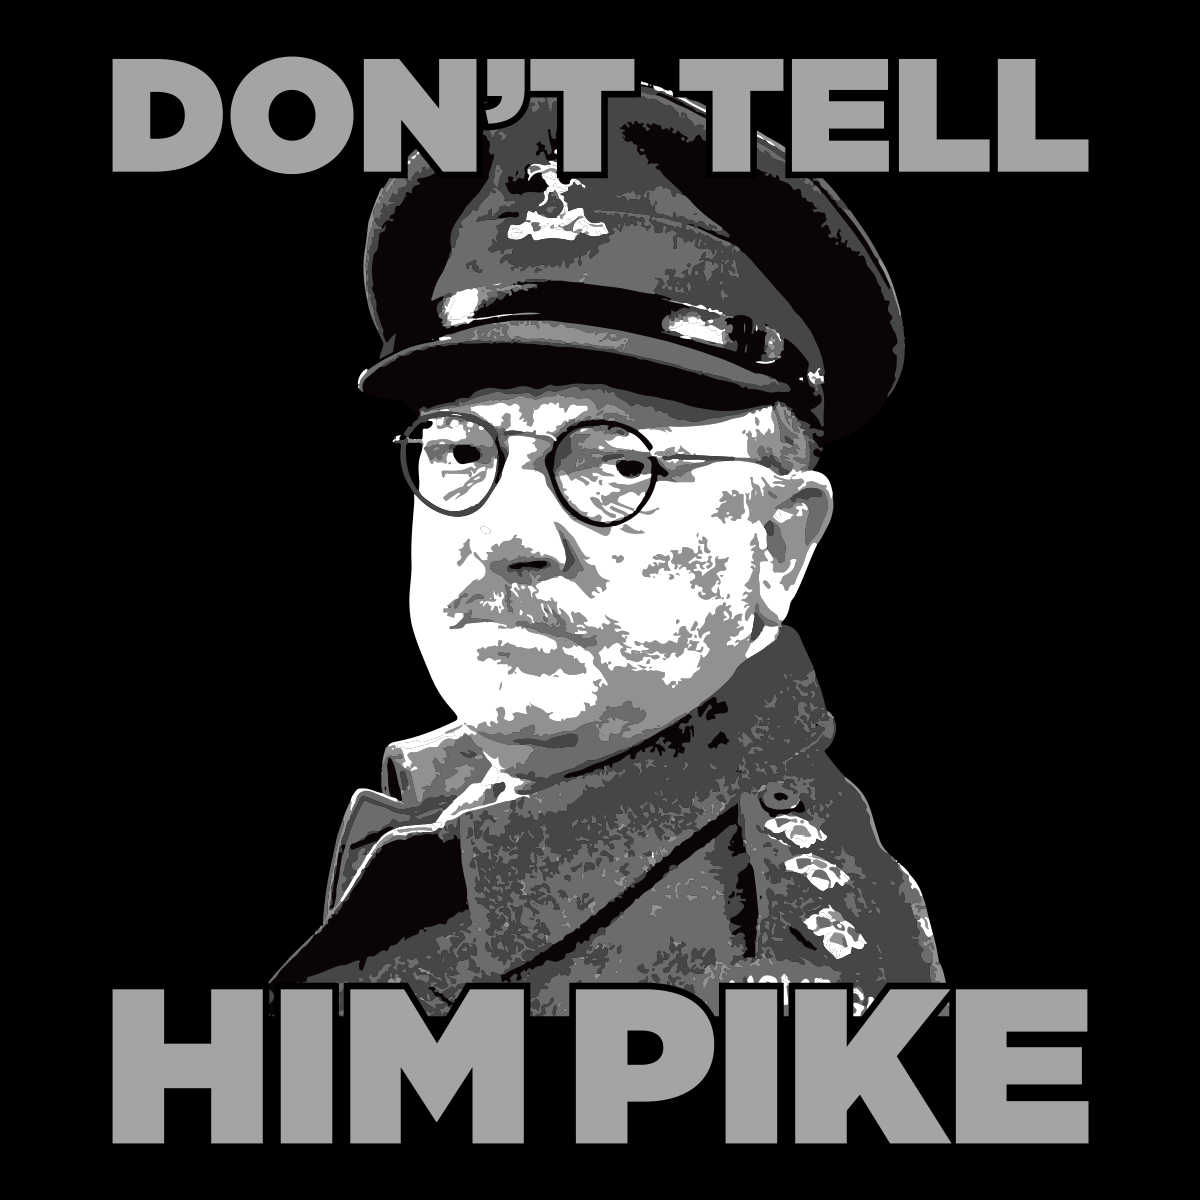 Don't Tell Him Pike Unisex T Shirt